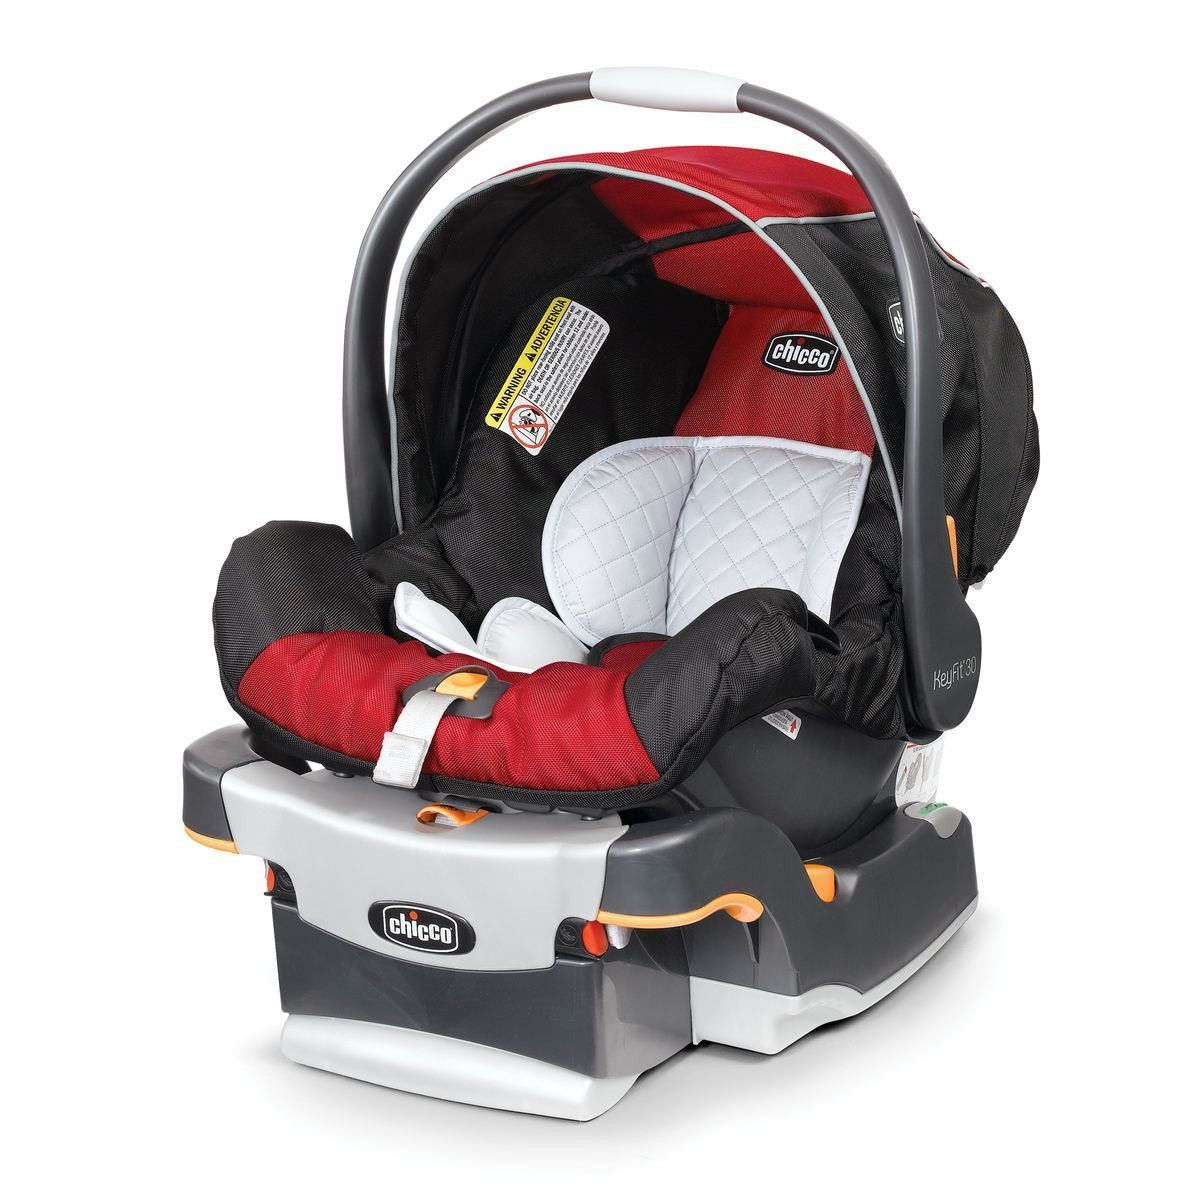 Chicco Keyfit 30 Infant Car Seat (With images) Baby car